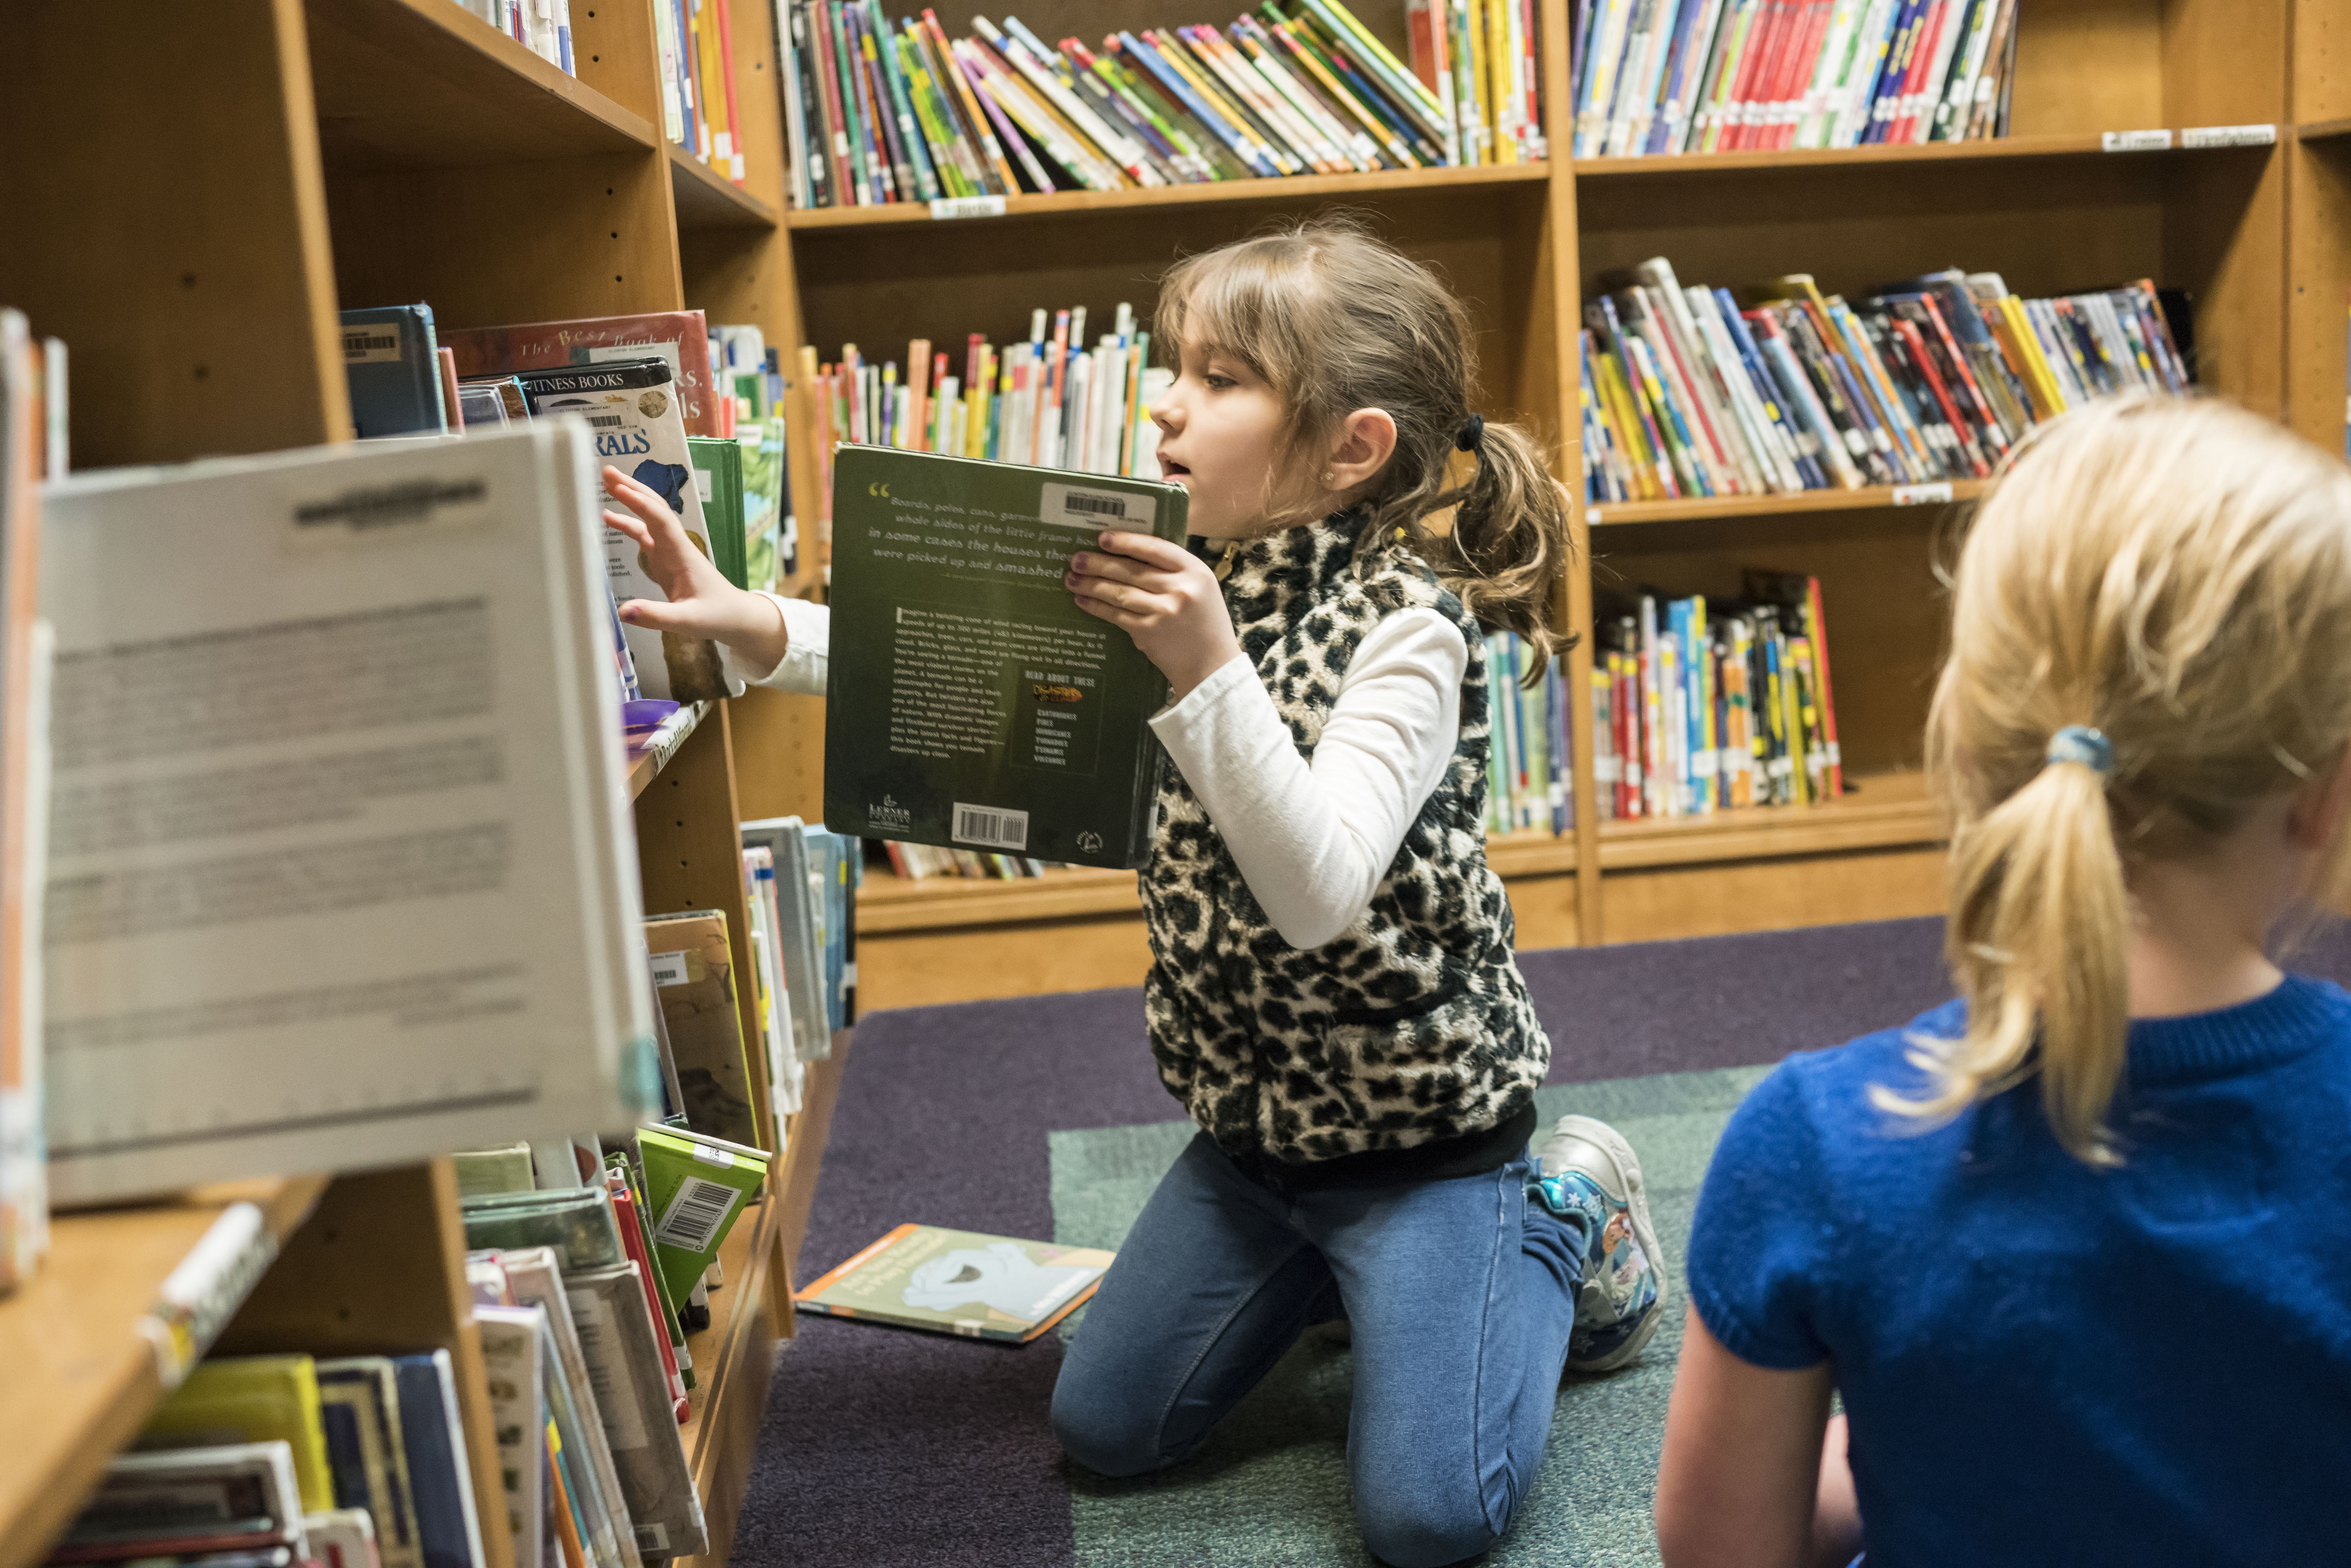 First-grader Jessica Rompala picks out books in the library at Clinton Street Elementary School in West Seneca, Wednesday, May 10, 2017.  (Derek Gee/Buffalo News)